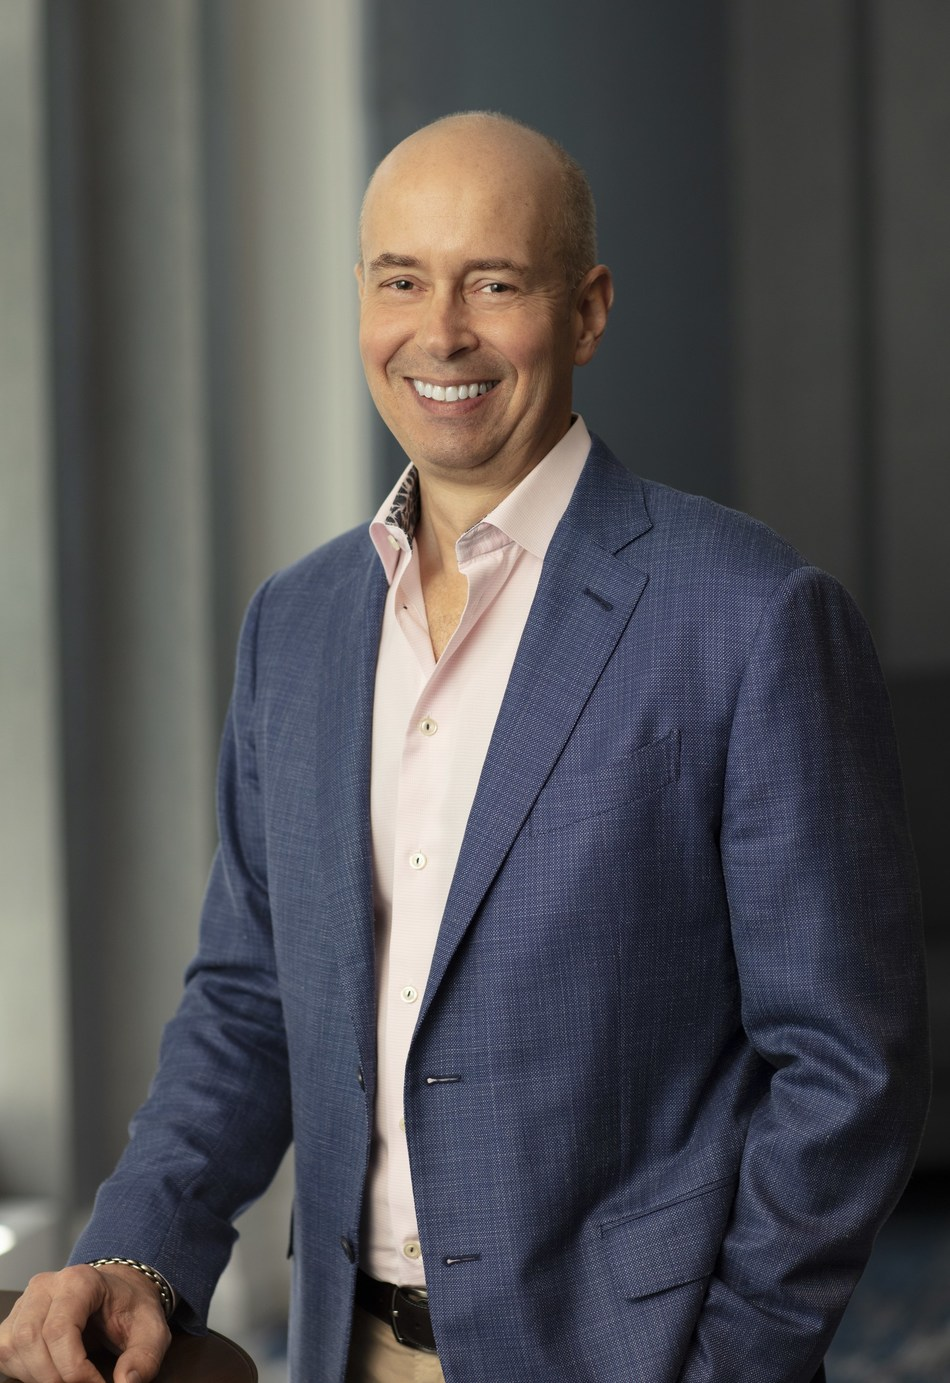 Canopy Growth Announces New Chair of the Board of Directors (CNW Group/Canopy Growth Corporation)